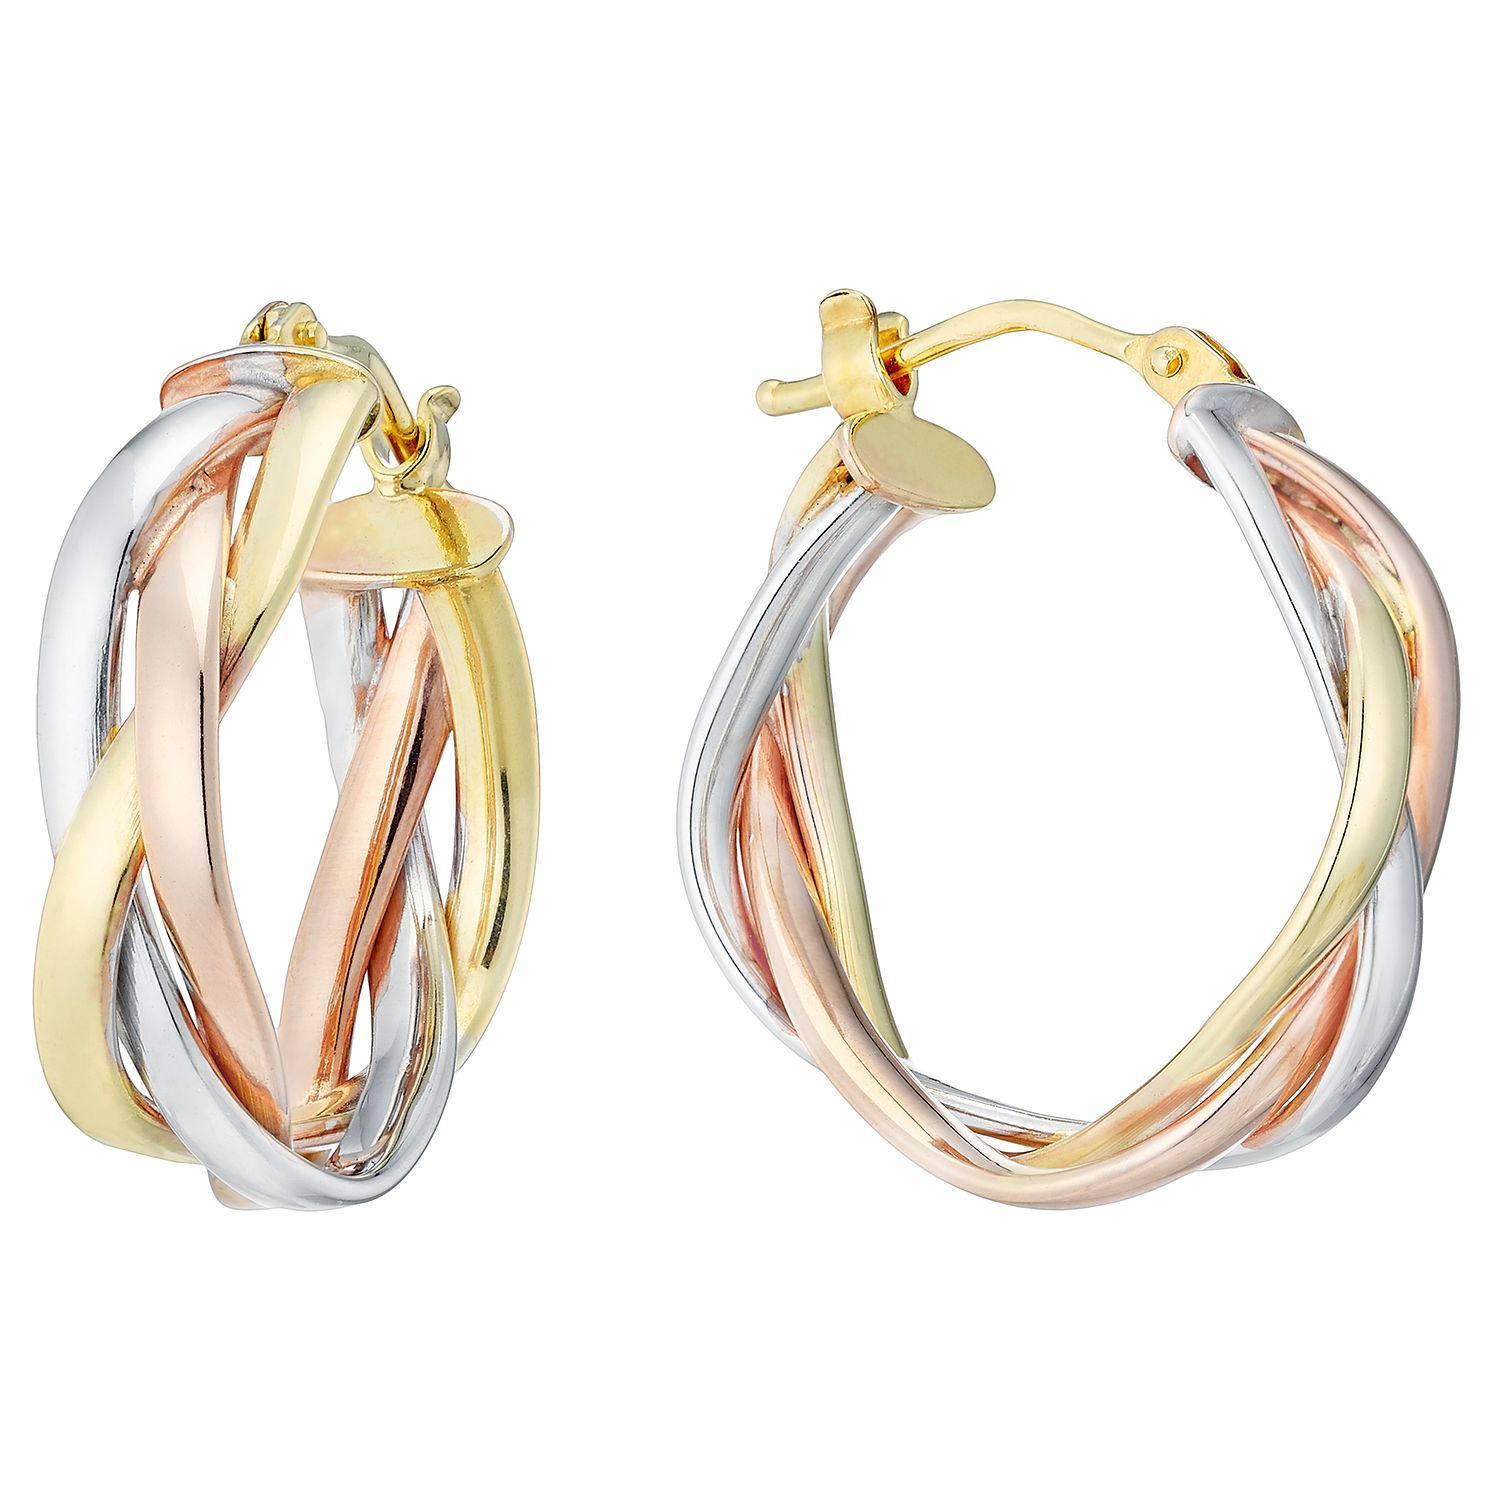 9ct 3 Colour Gold Braided 15mm Hoop Earrings - Product number 4507428